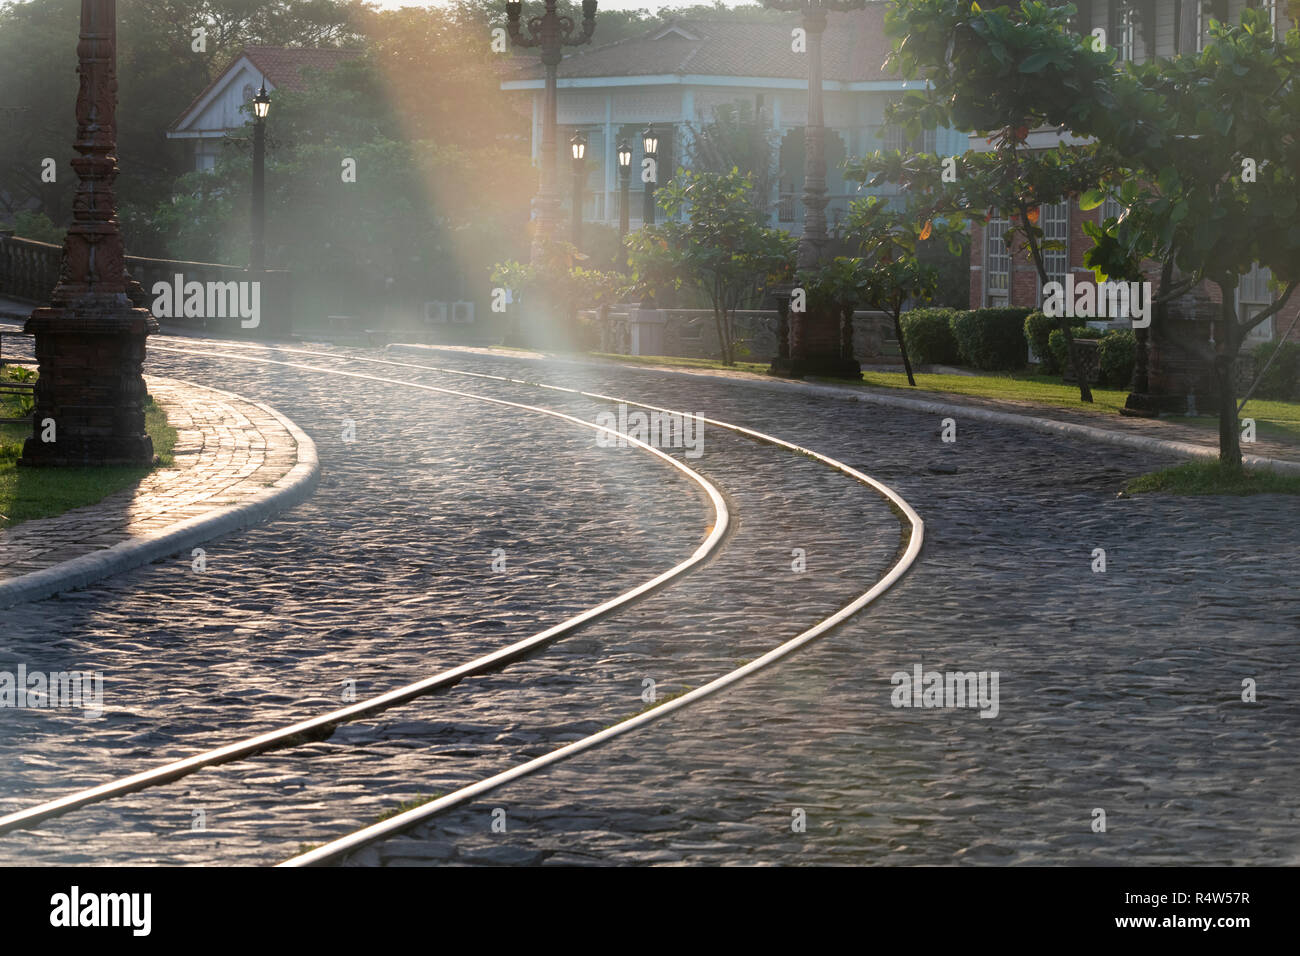 Shards of sunlight and the olde-worlde historic cobbled street with tram tracks lines day - Stock Image